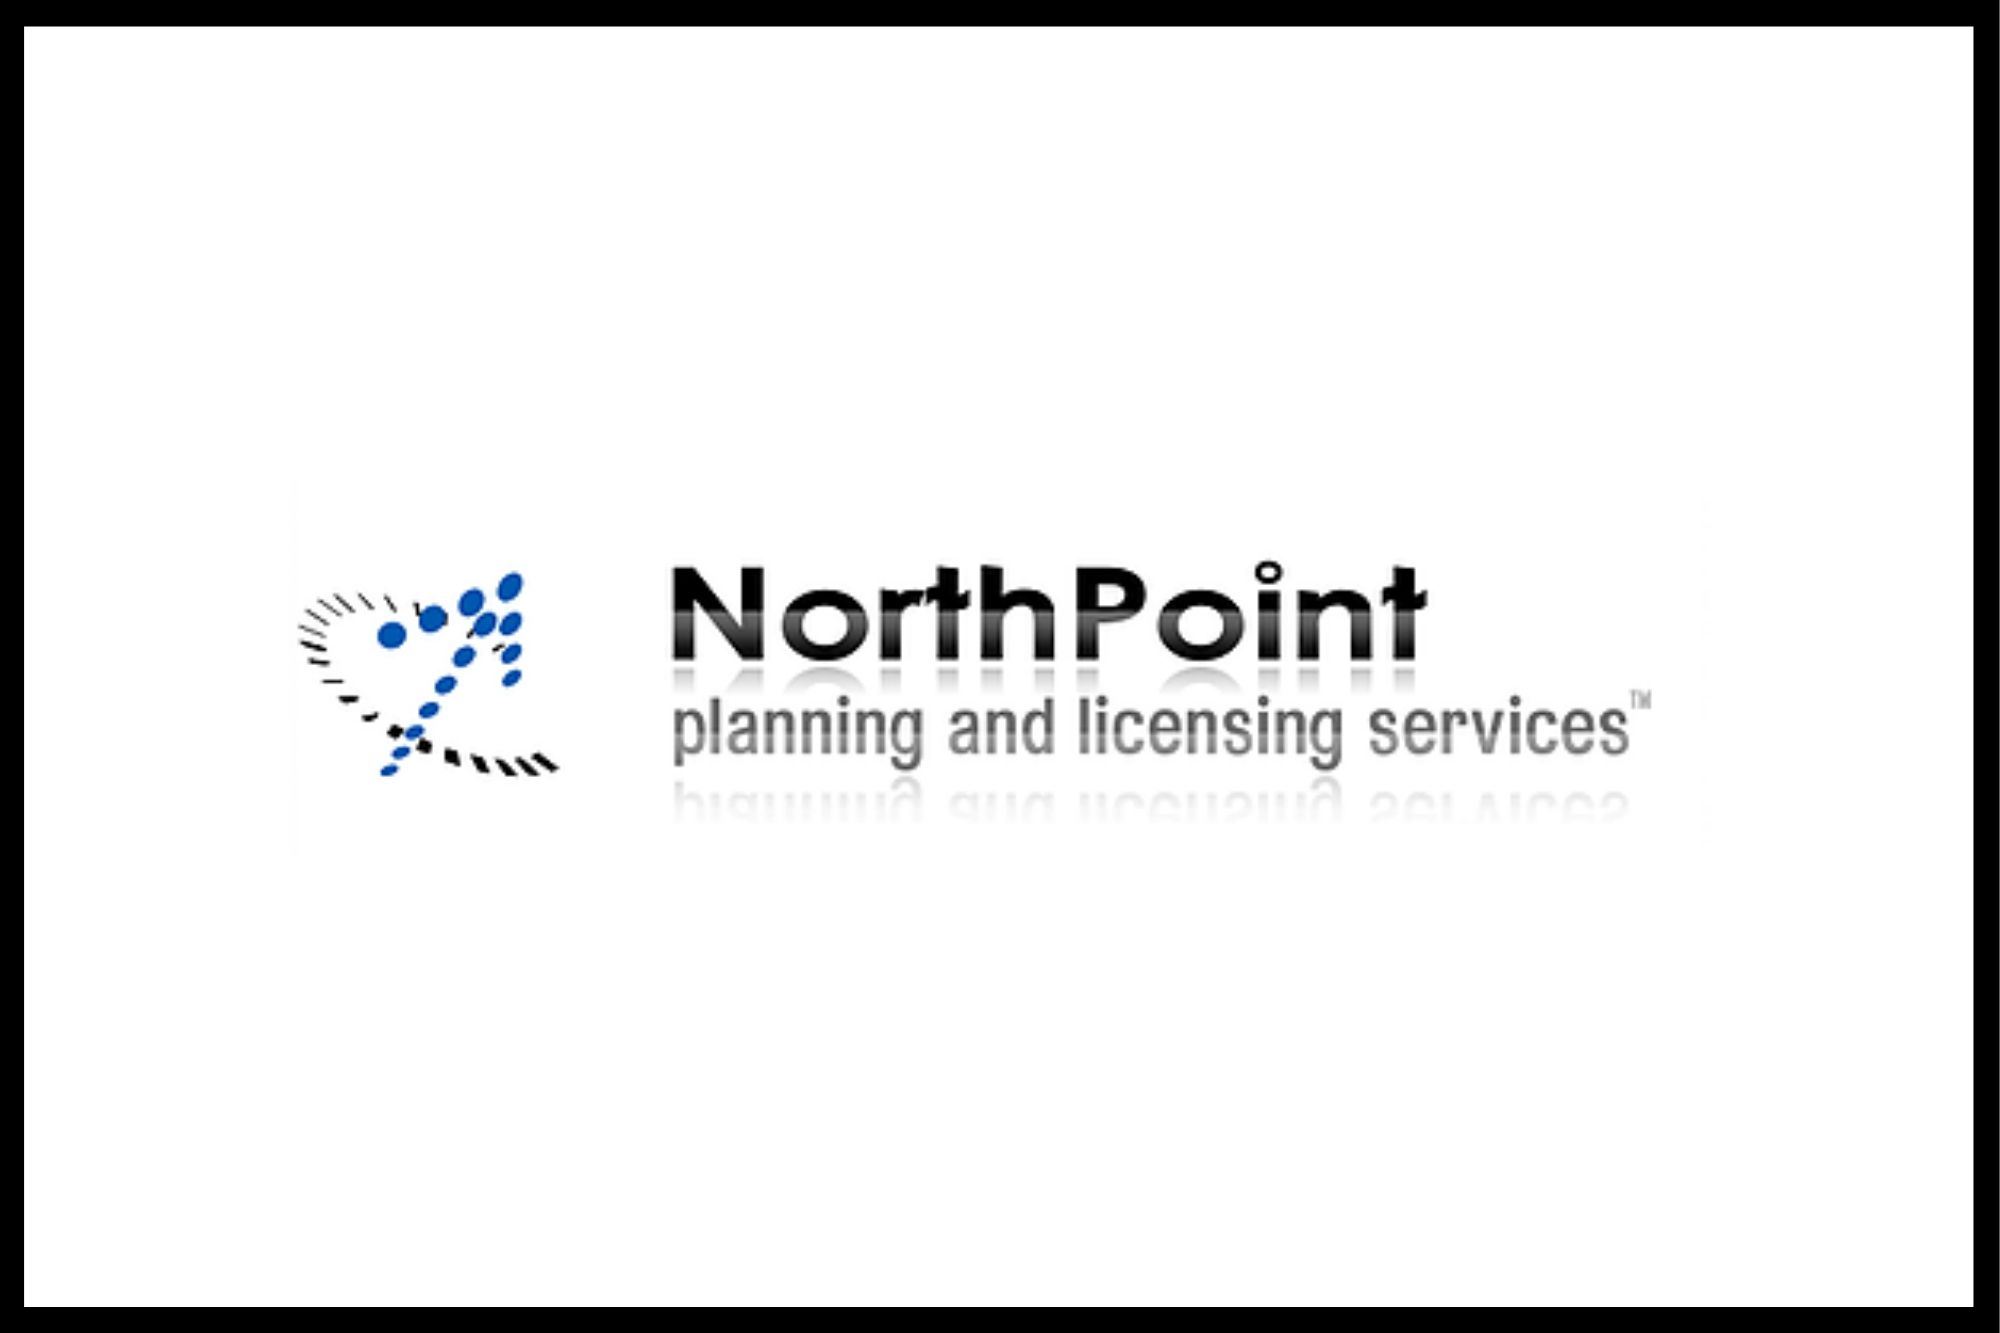 NorthPoint Planning & Licensing Services